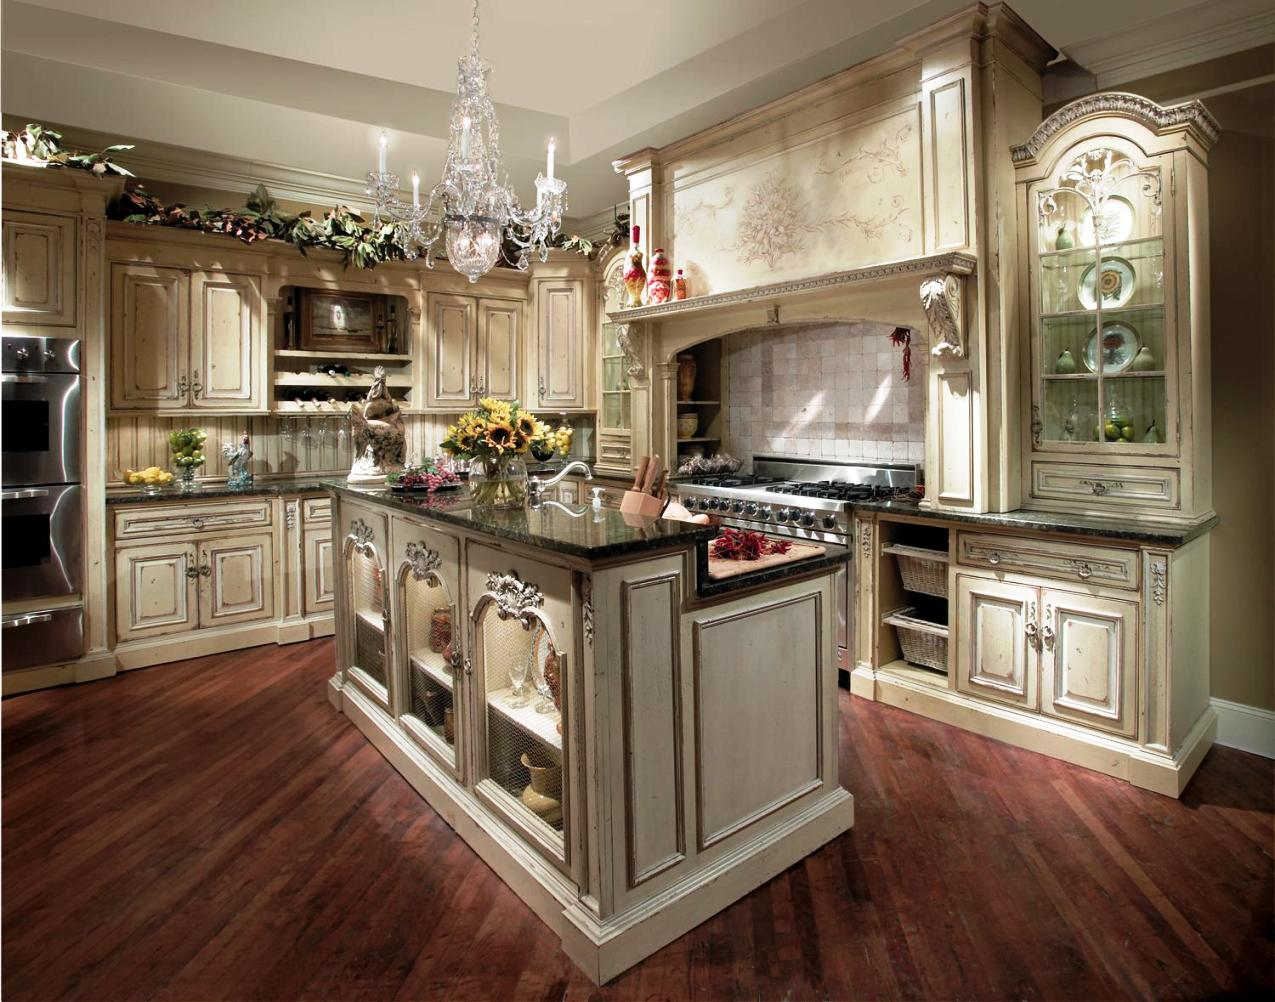 french country kitchen flooring ideas photo - 2